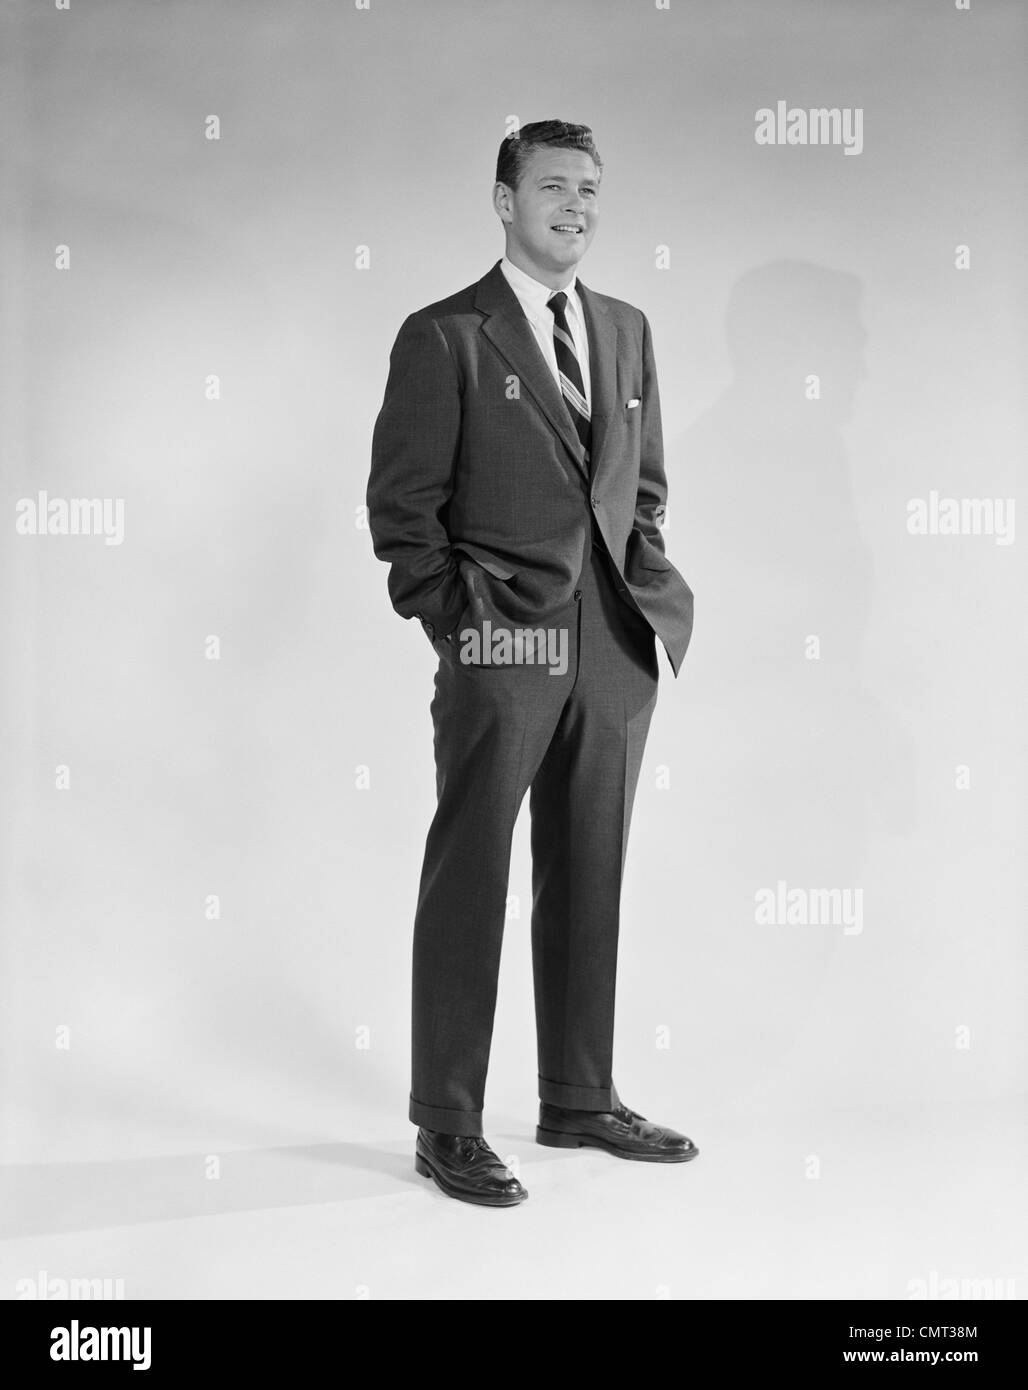 man standing full length 1960s stock photos man standing full